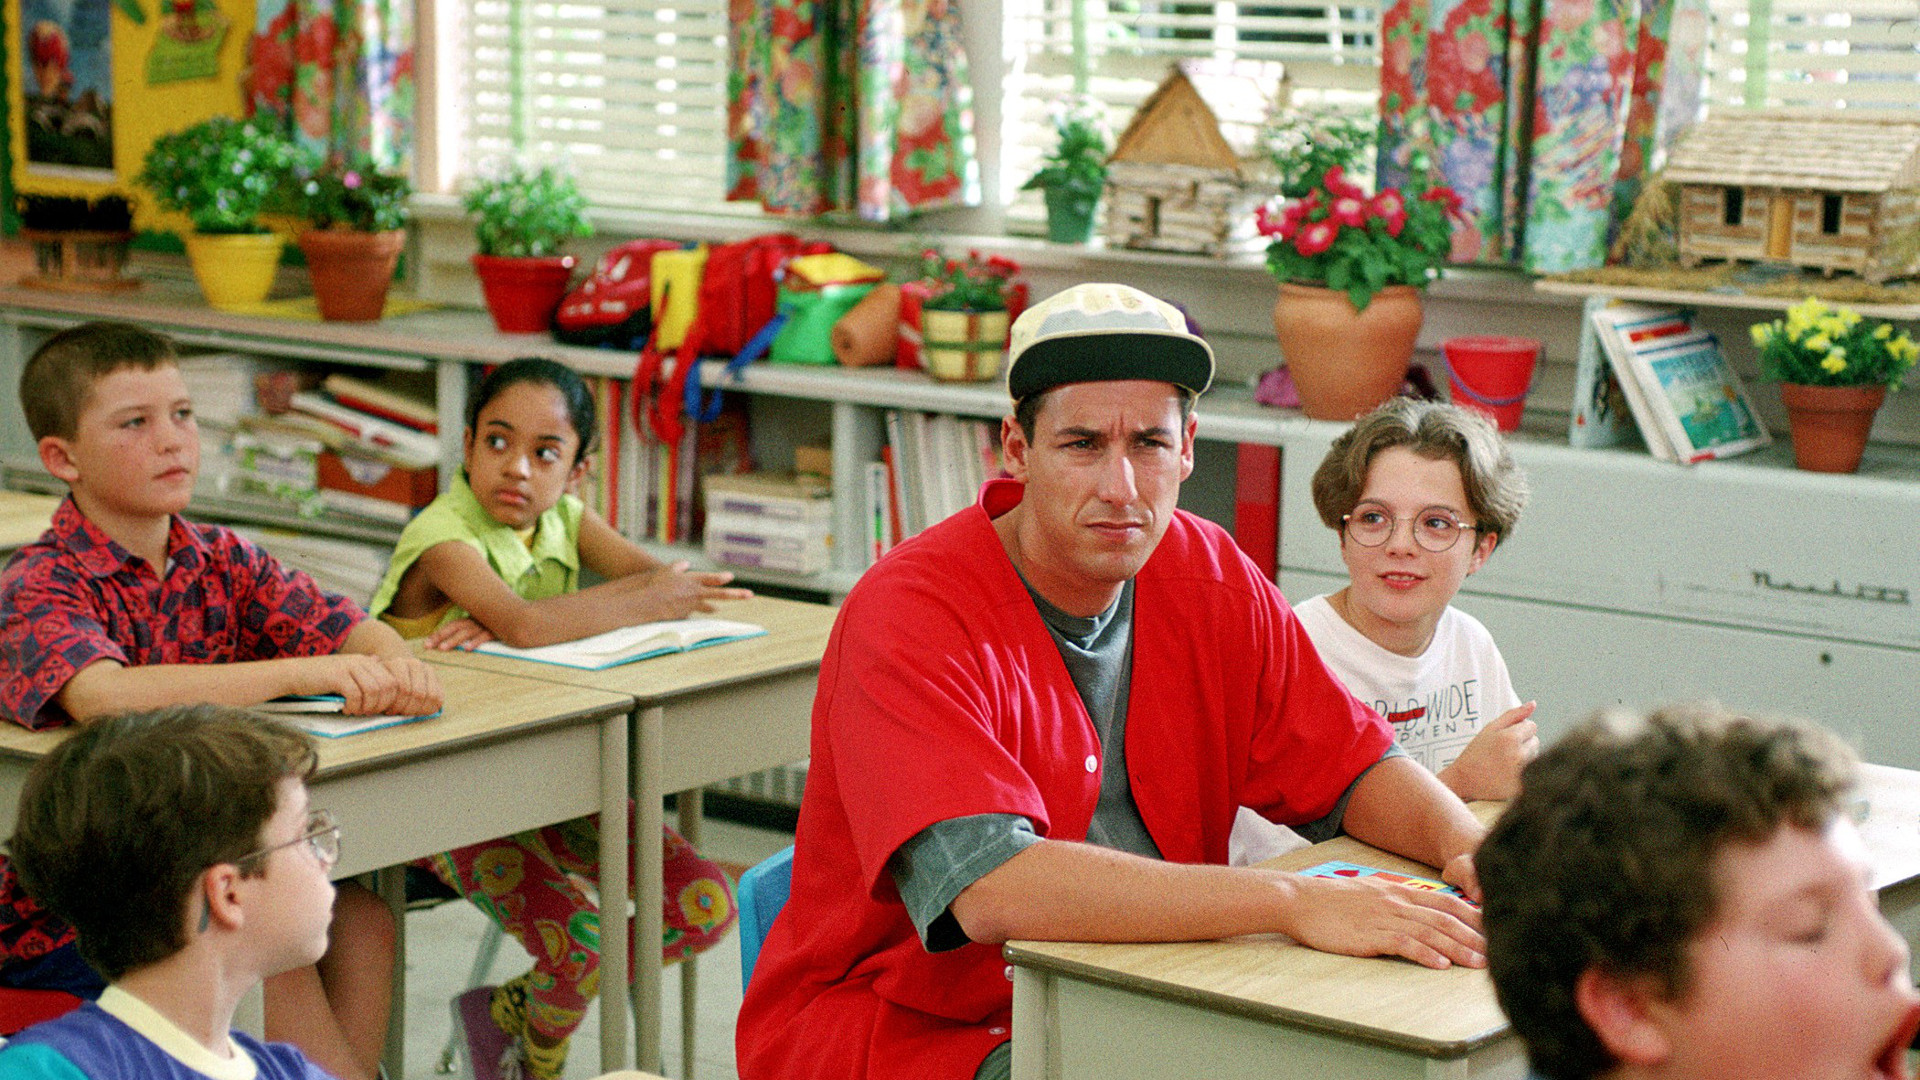 The 15 Most Quotable Lines From Billy Madison – IFC